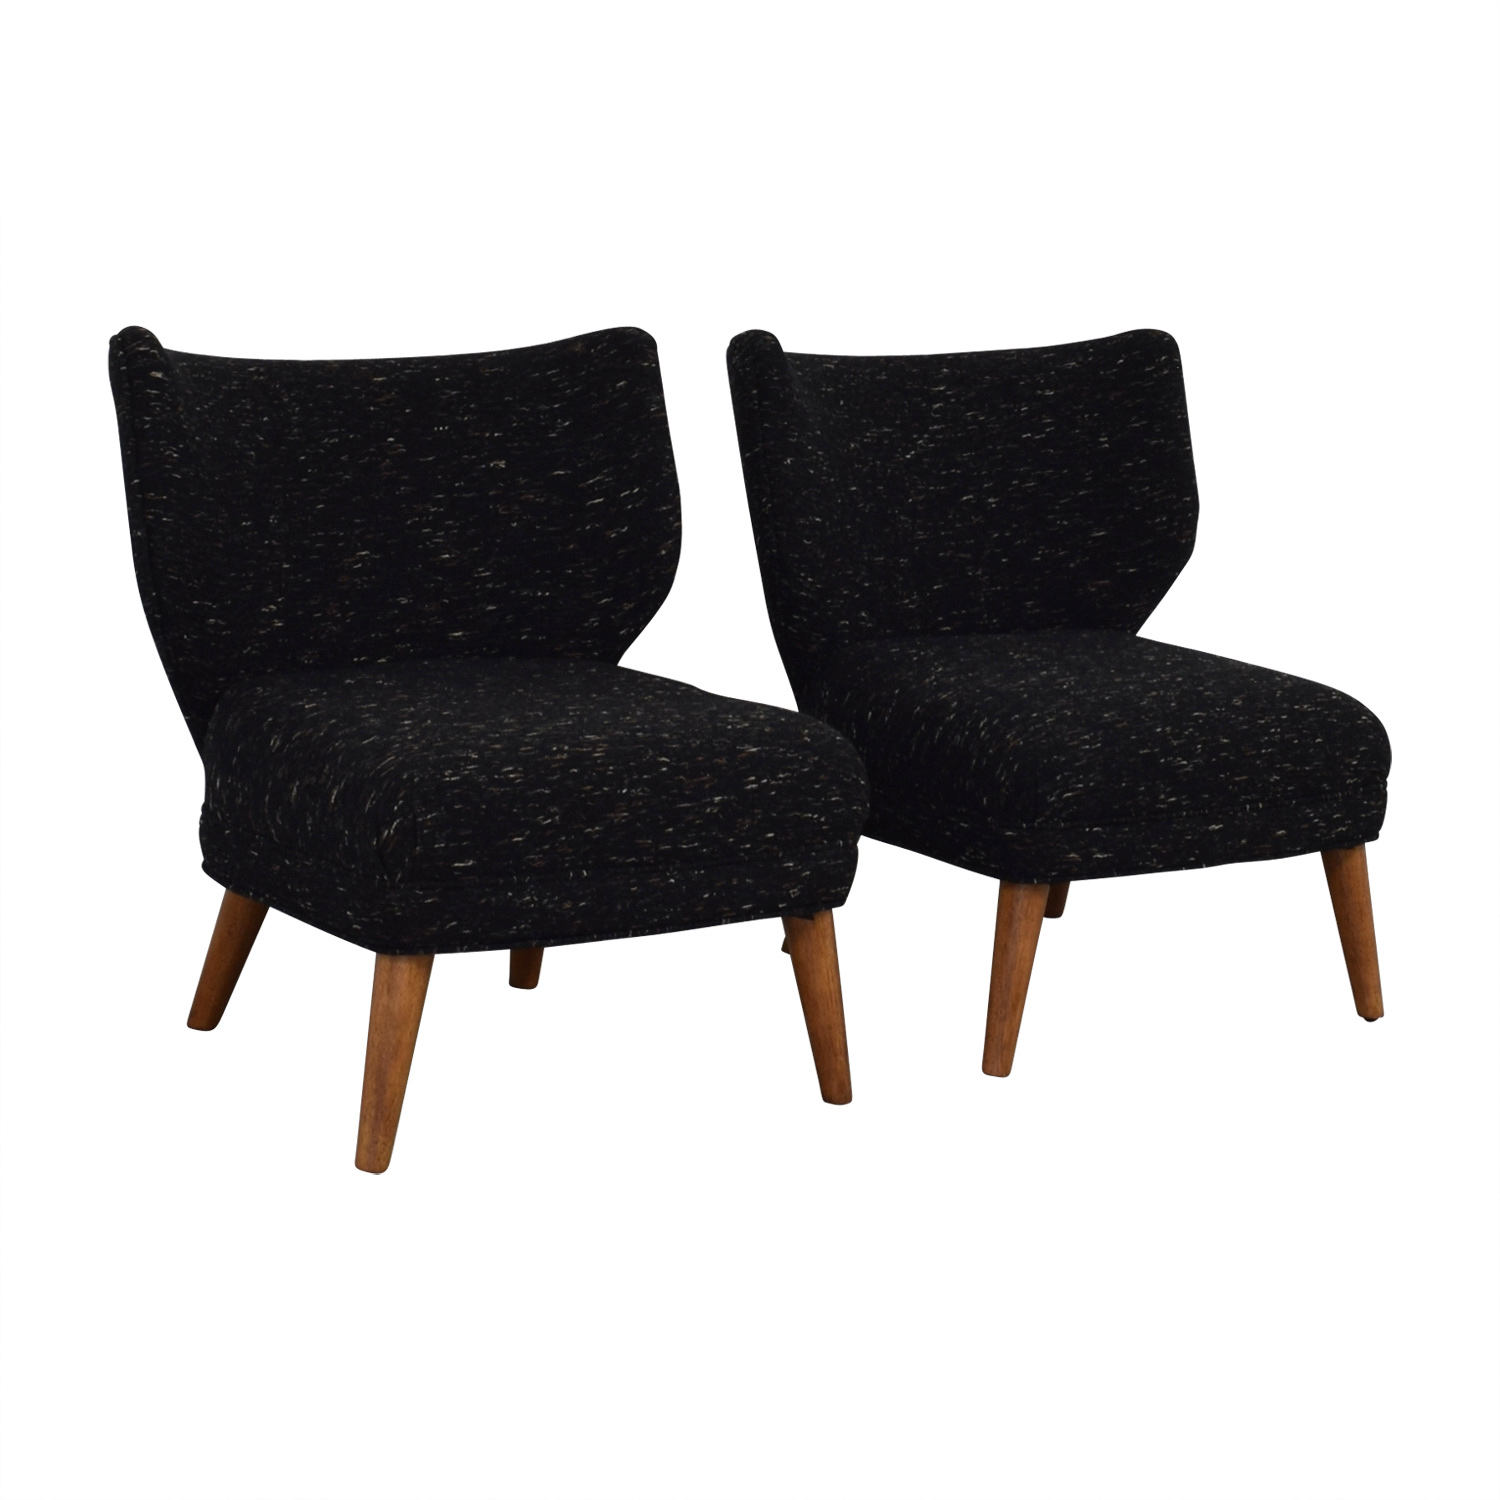 West Elm West Elm Retro Blue Wing Chairs price